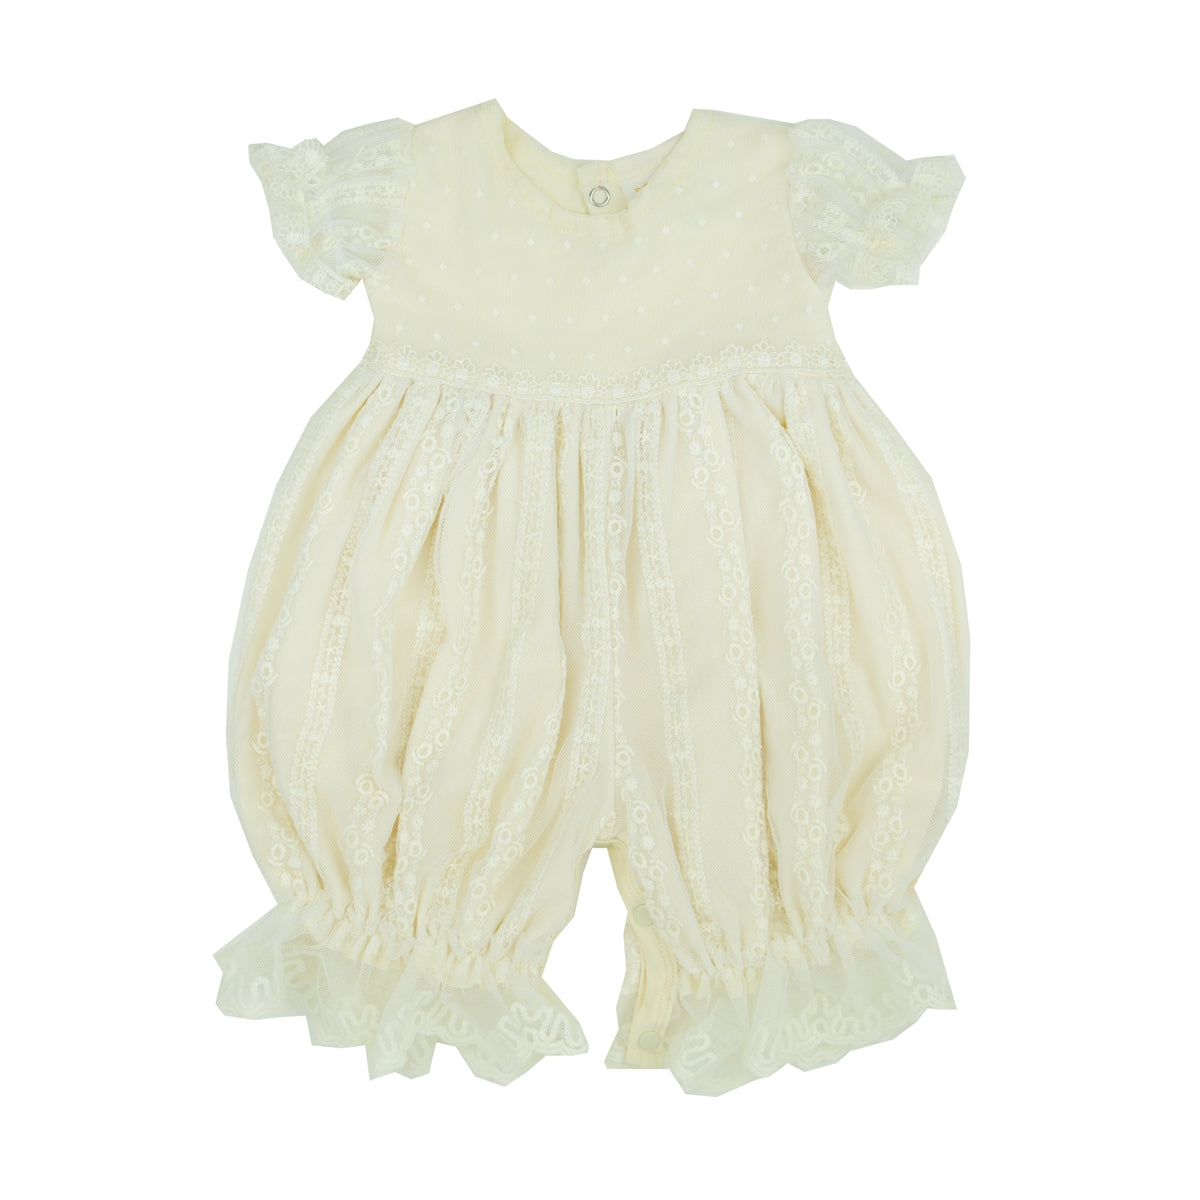 Mary Catherine Bubble Dress by Haute Baby HB_SMC04 - Nenes Lullaby Boutique Inc